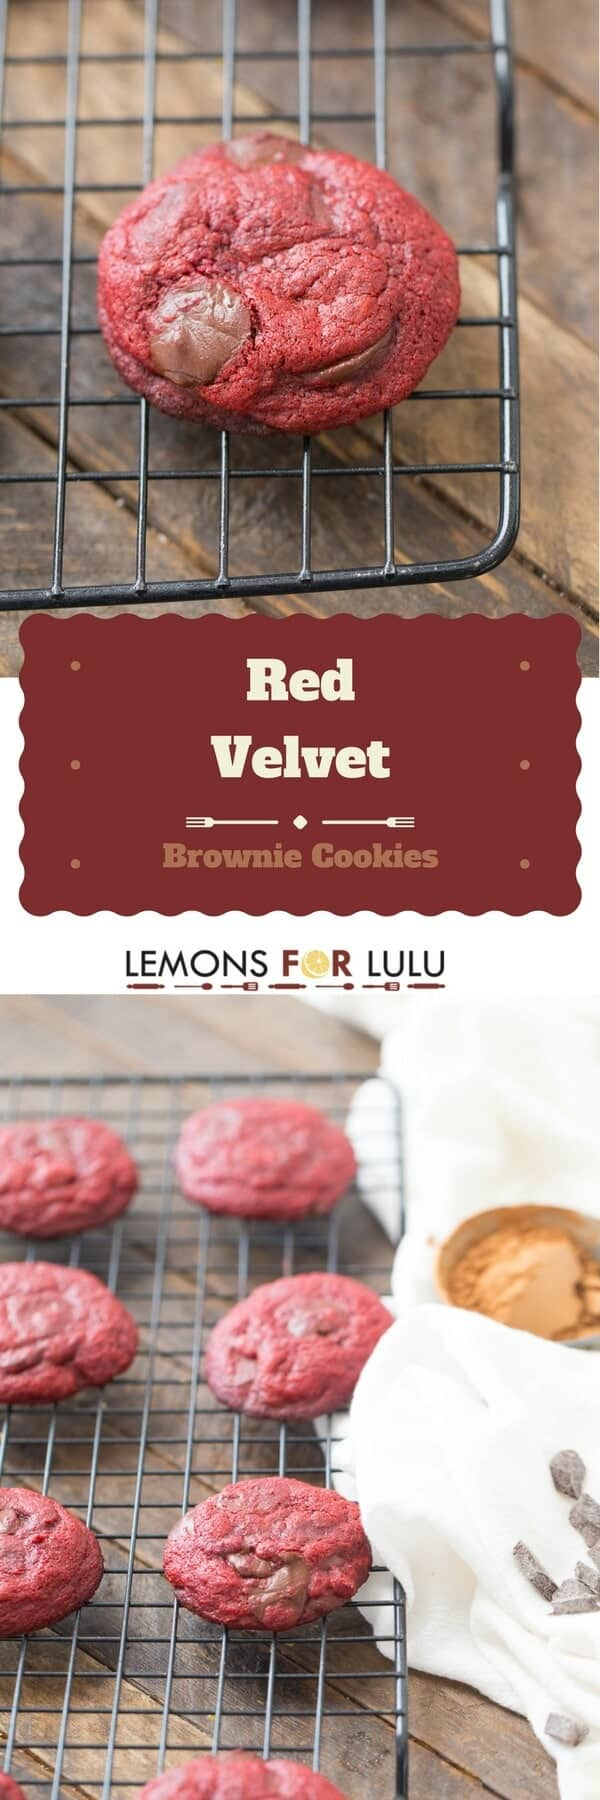 Soft brownie cookies will lots of chocolate chips and gorgeous red velvet color!